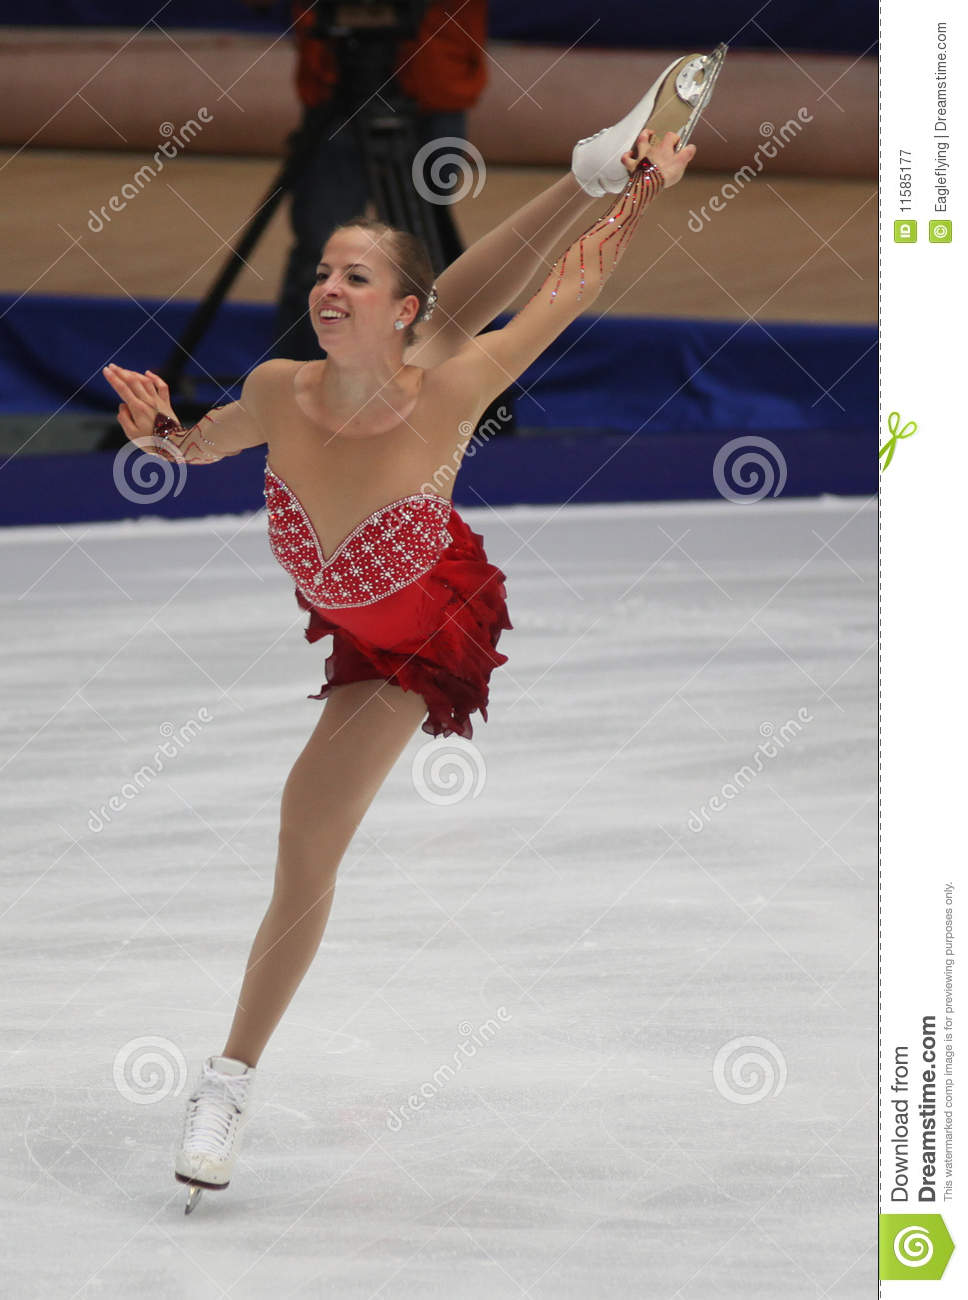 carolina kostner ita editorial photography image 11585177